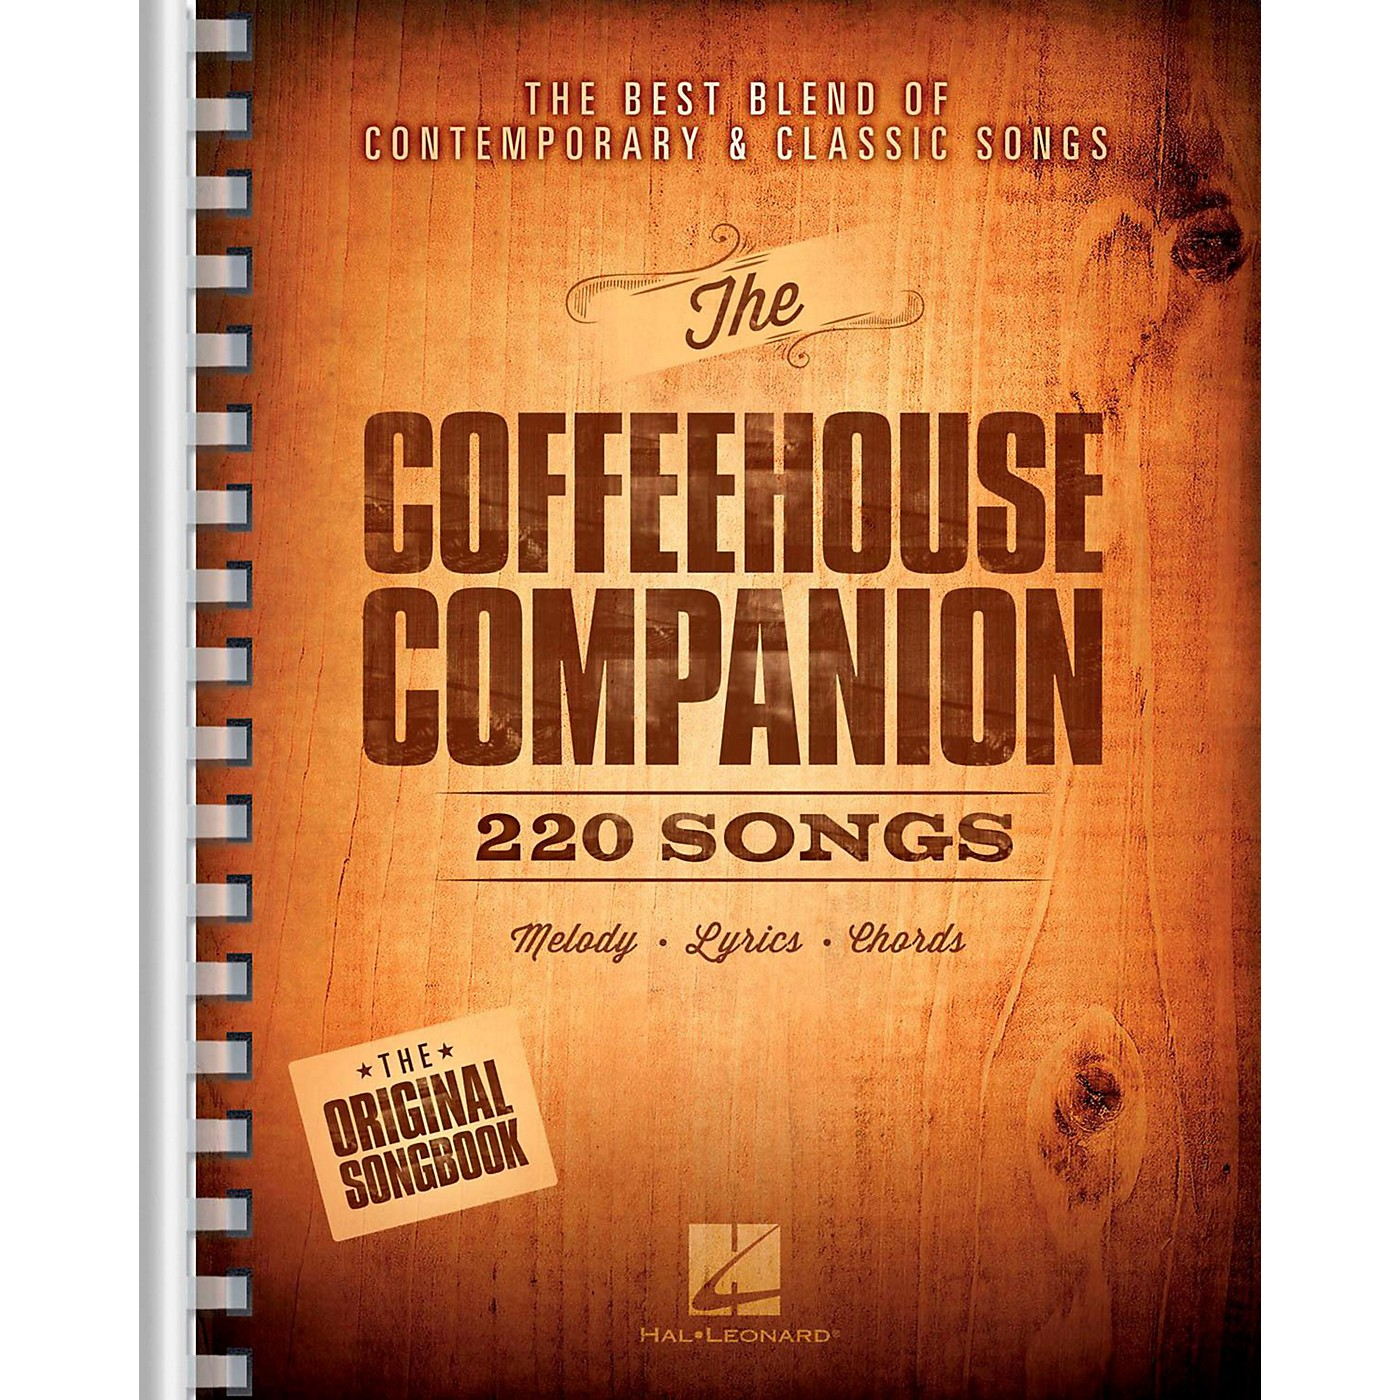 Hal Leonard The Coffeehouse Companion - The Best Blend of Contemporary & Classic Songs thumbnail